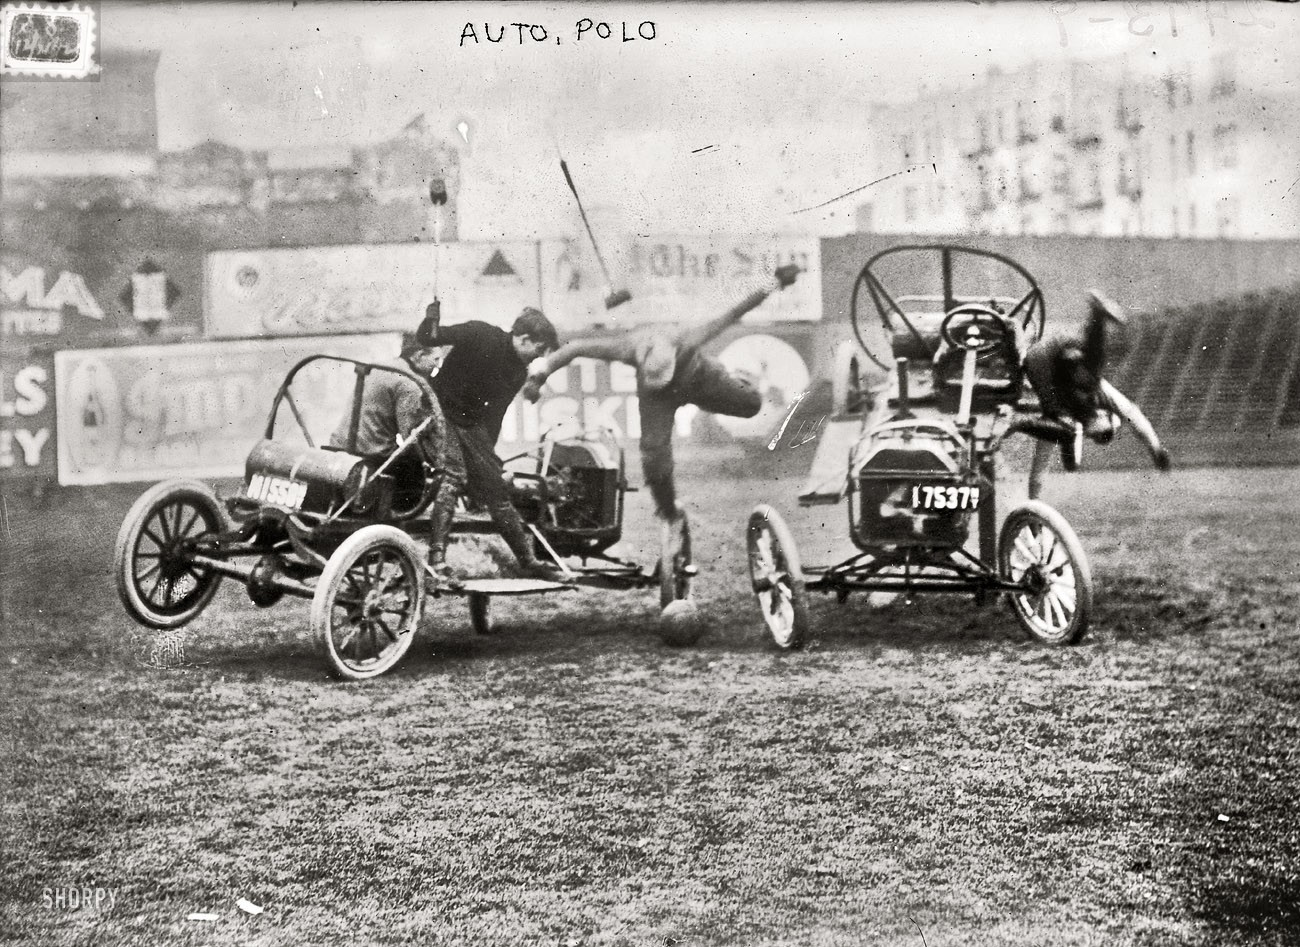 vintage monochrome historic auto polo